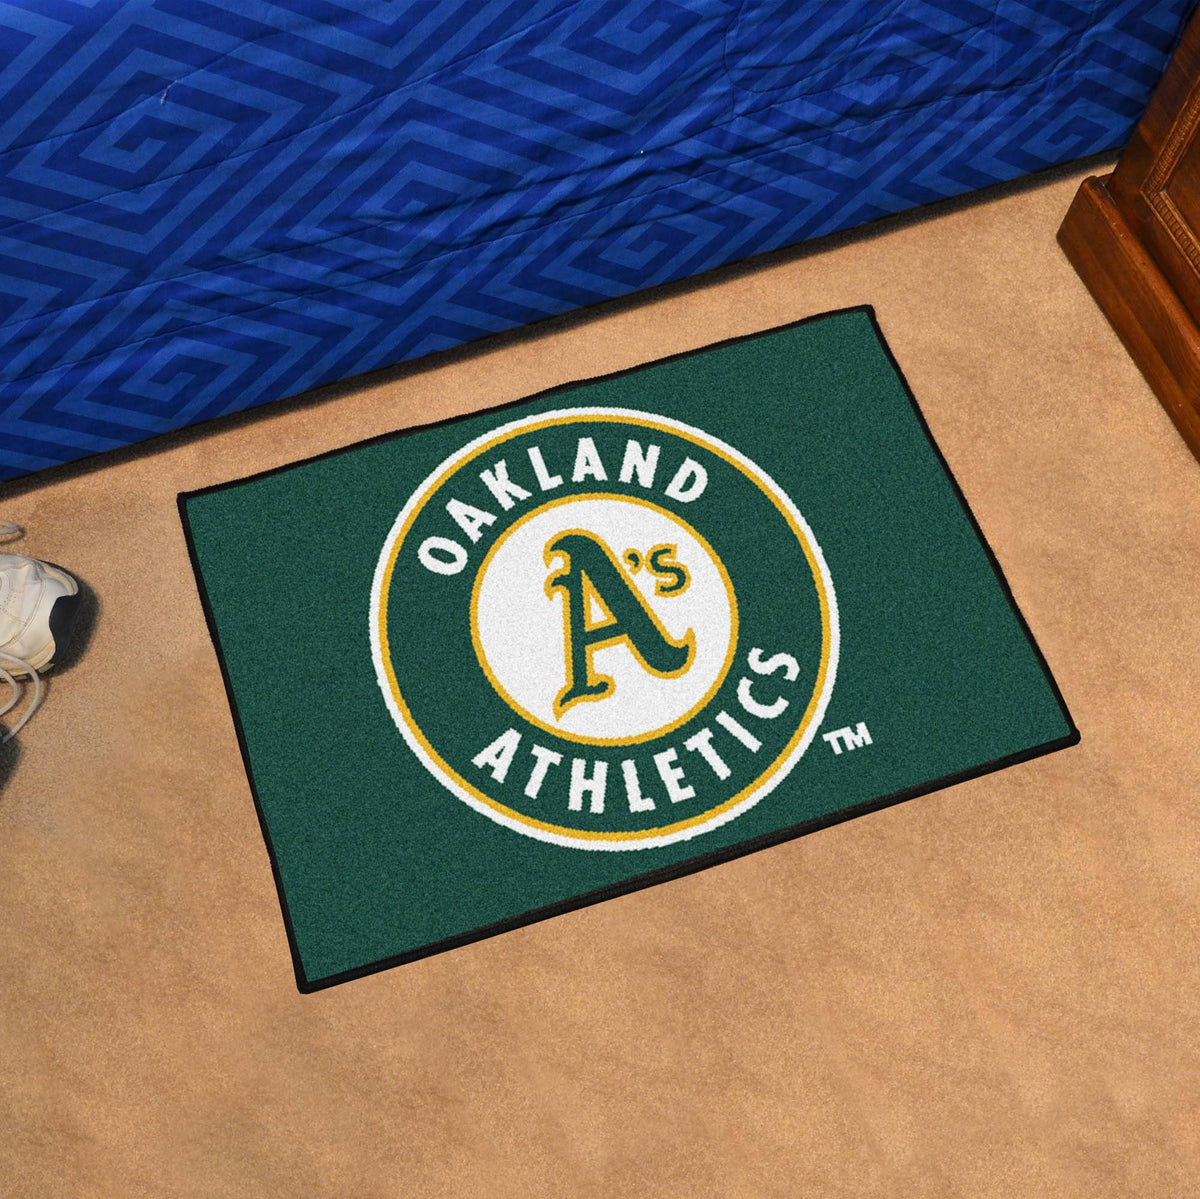 MLB - Starter Mat MLB Mats, Rectangular Mats, Starter Mat, MLB, Home Fan Mats Oakland Athletics